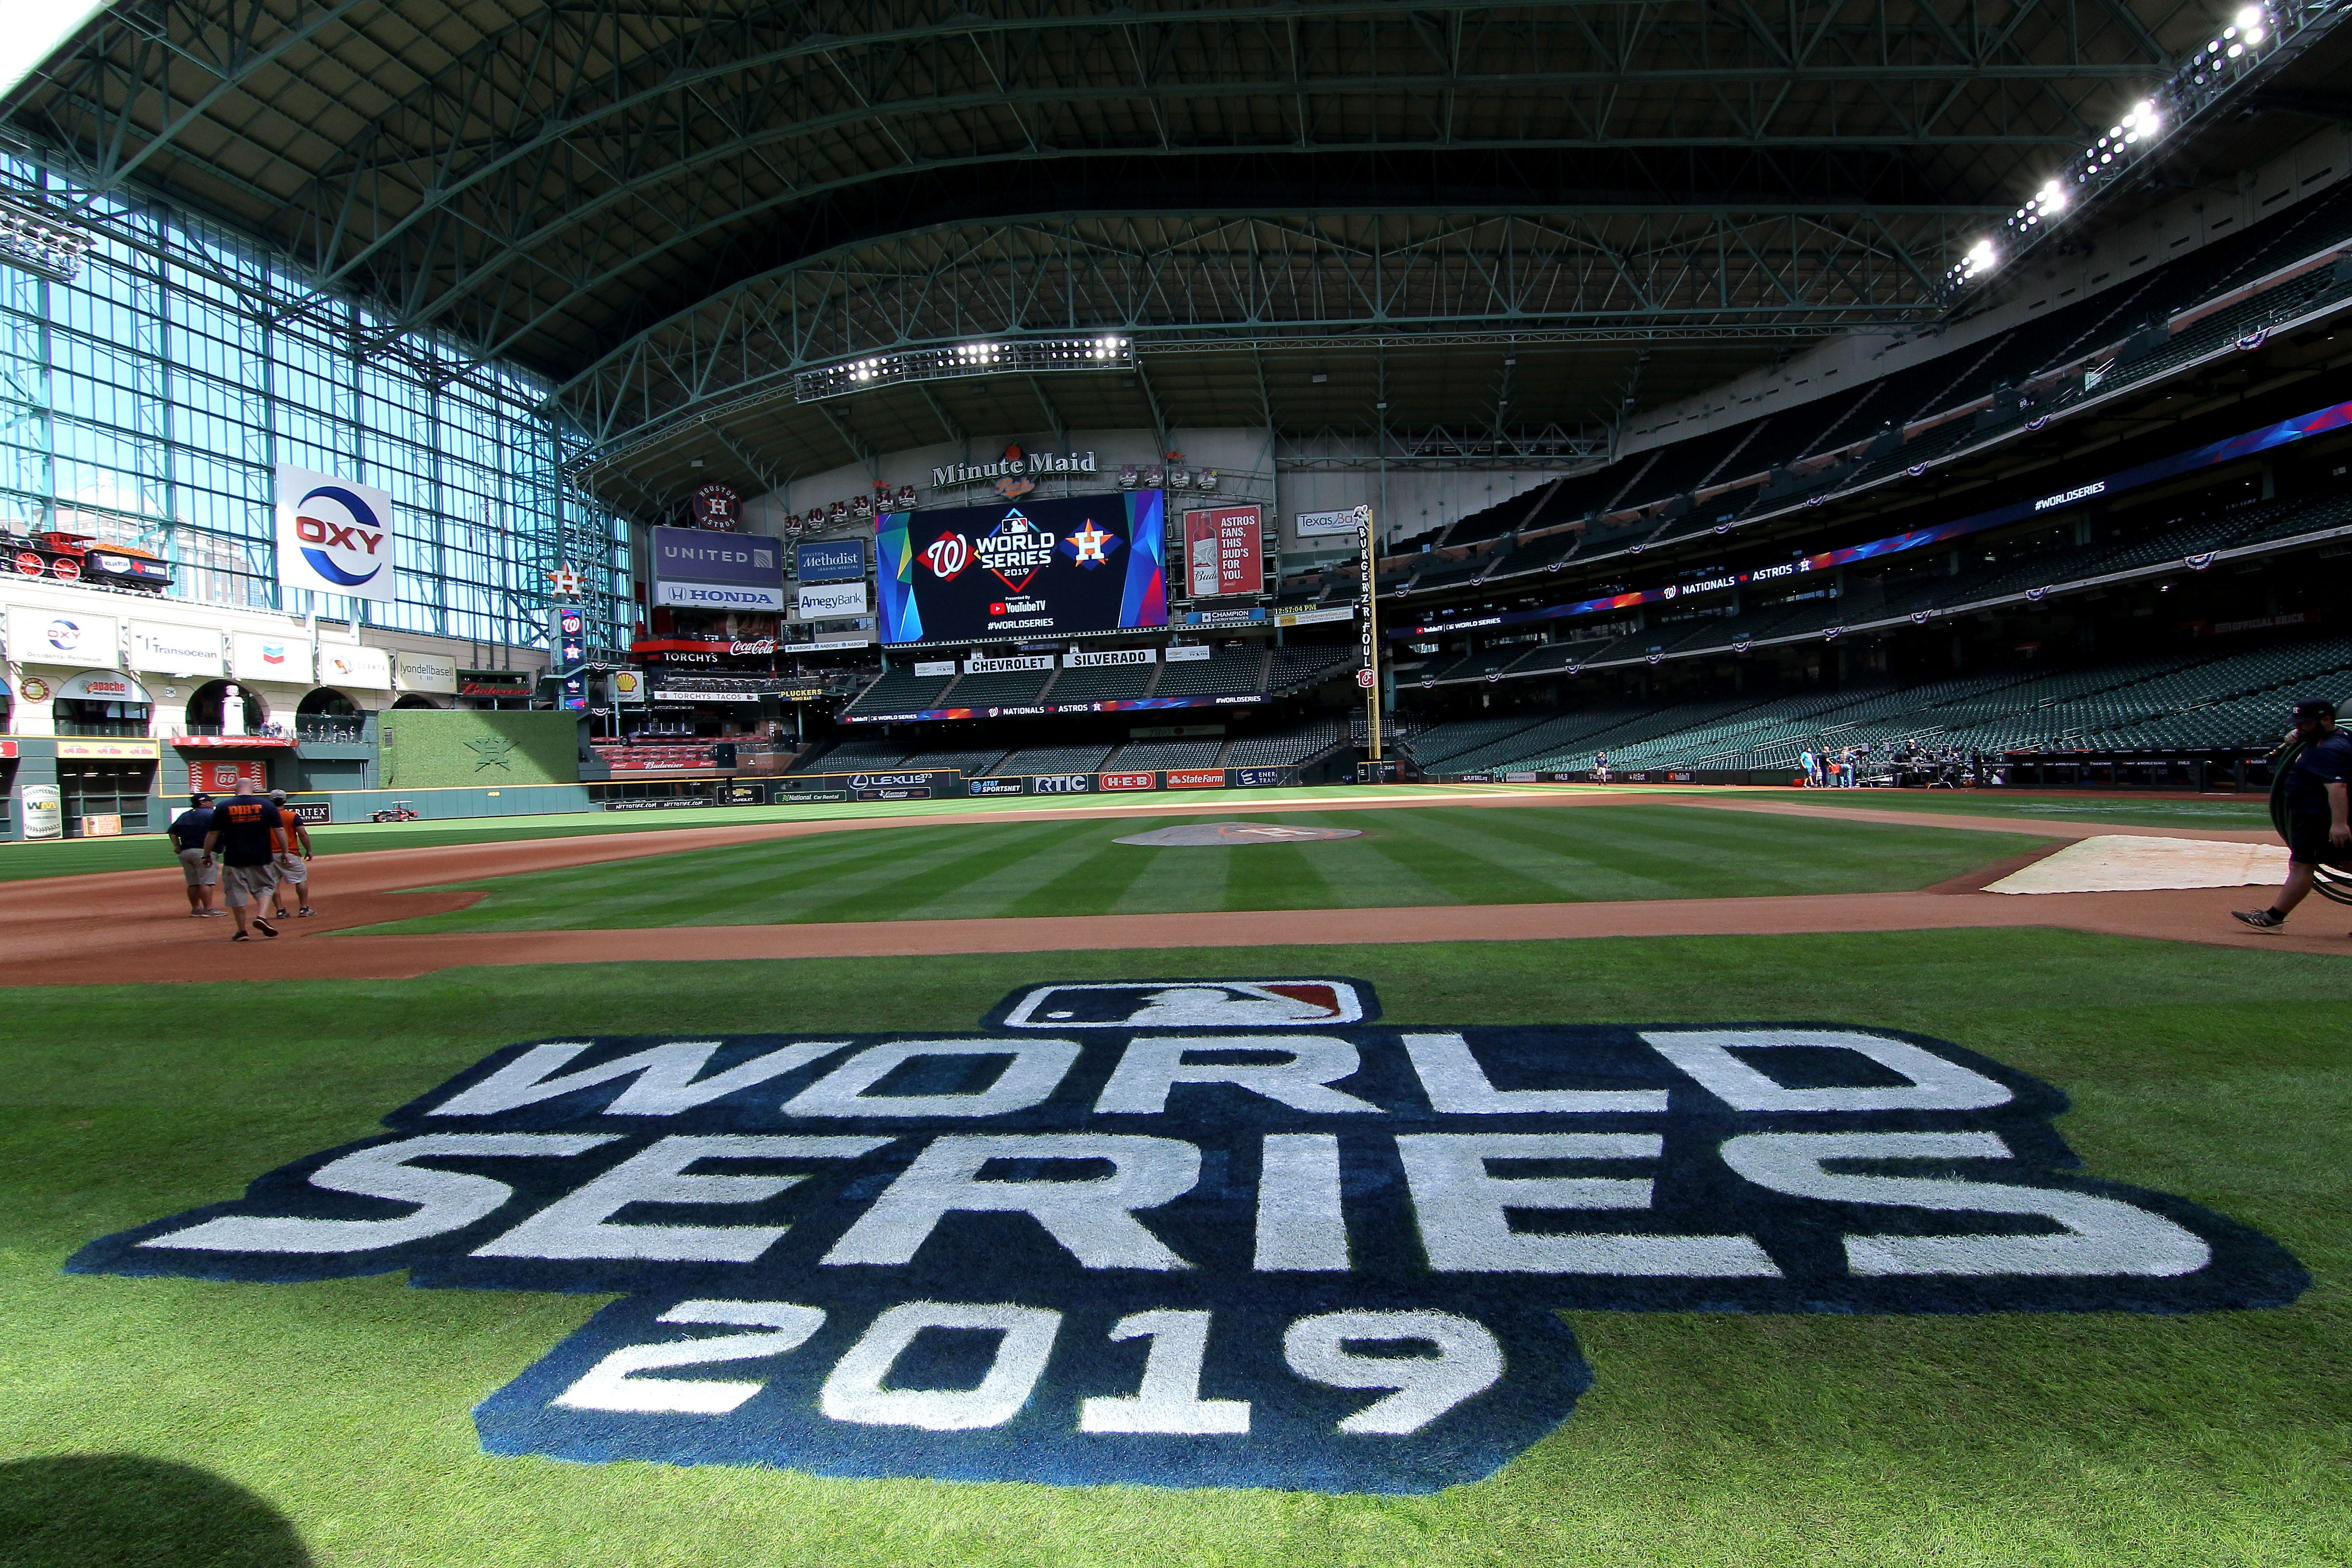 World Series preview: Breaking down the Astros vs. Nationals matchup